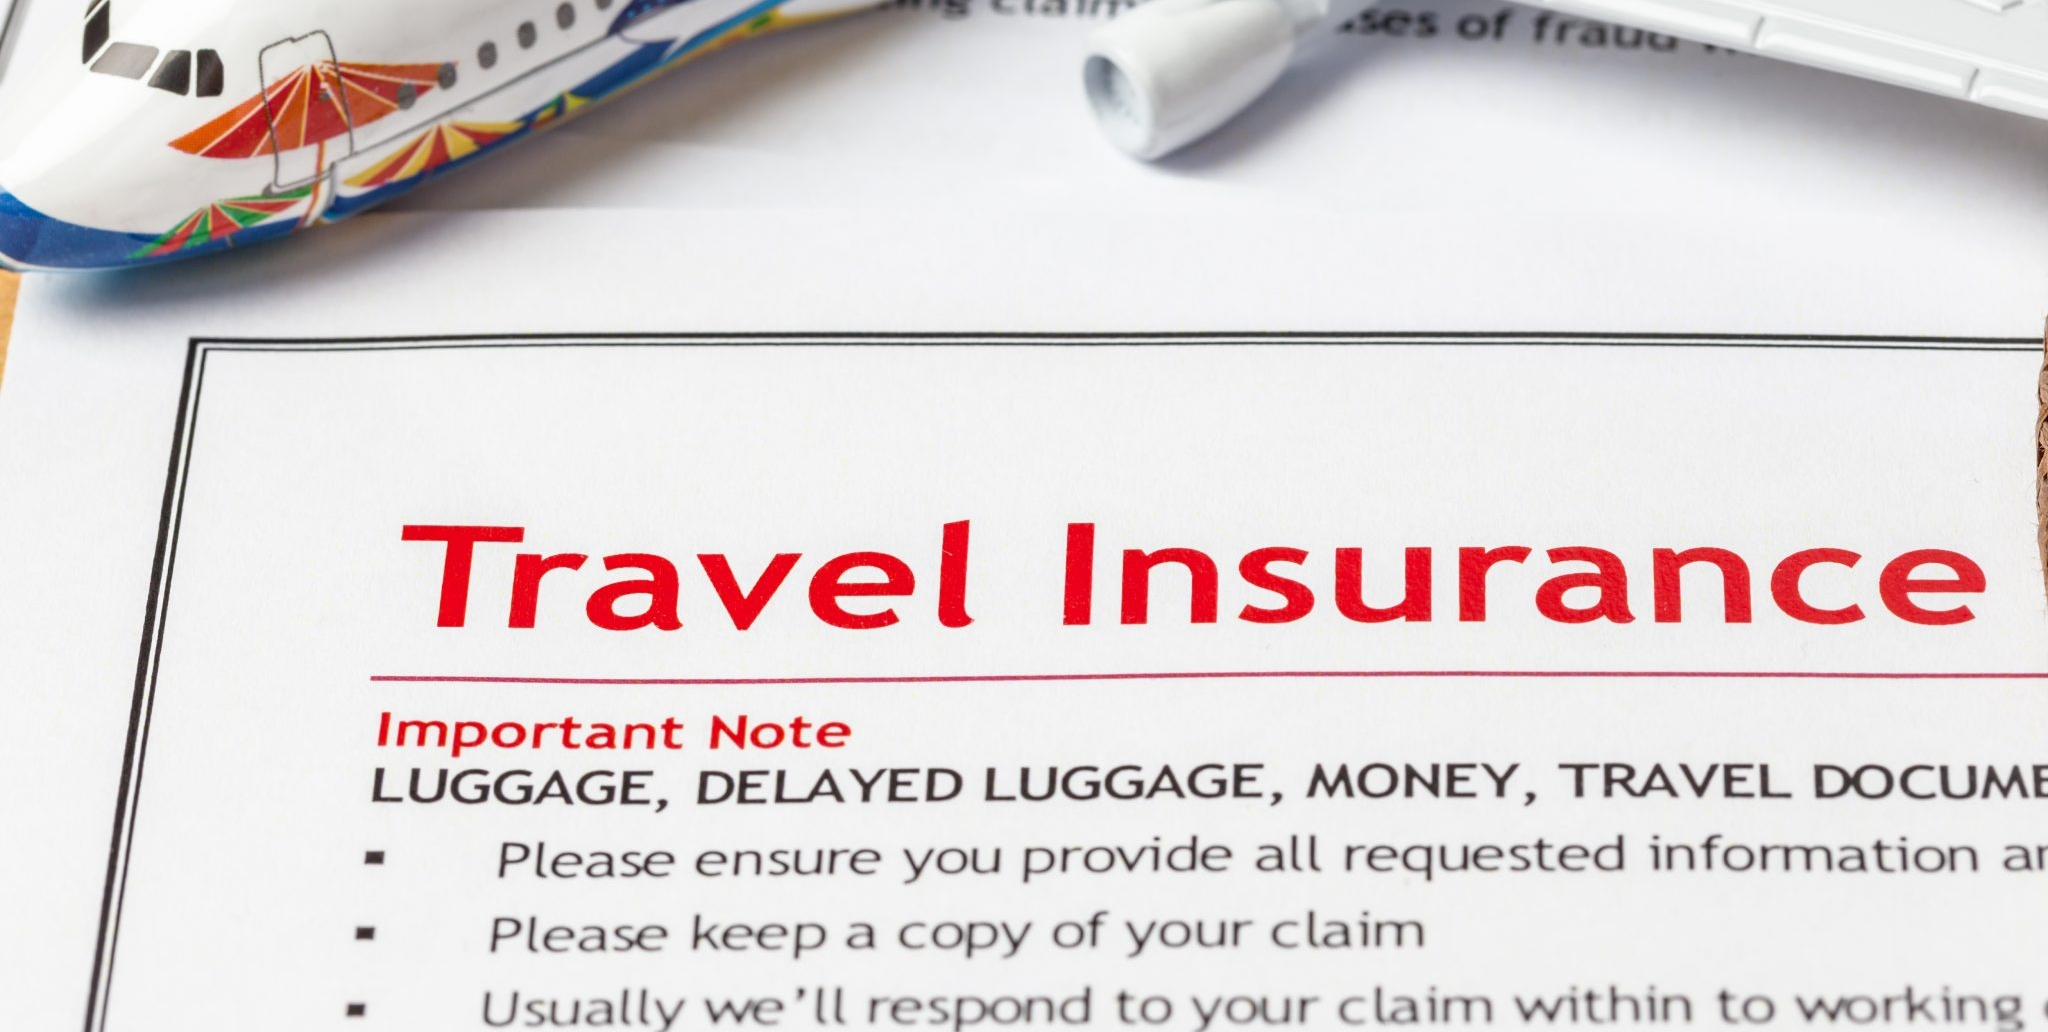 What Does Trip Insurance Cover